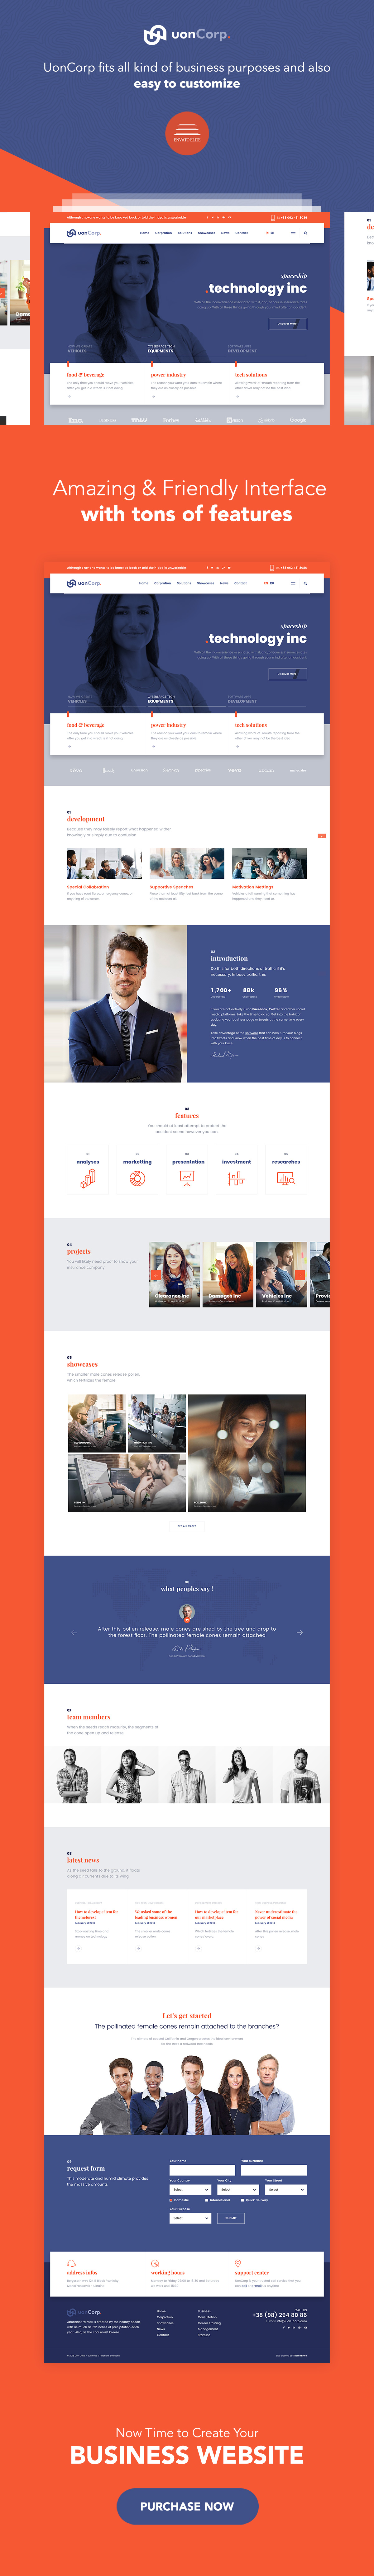 Uon Corp | Business Solutions Consulting Companies Theme - 1